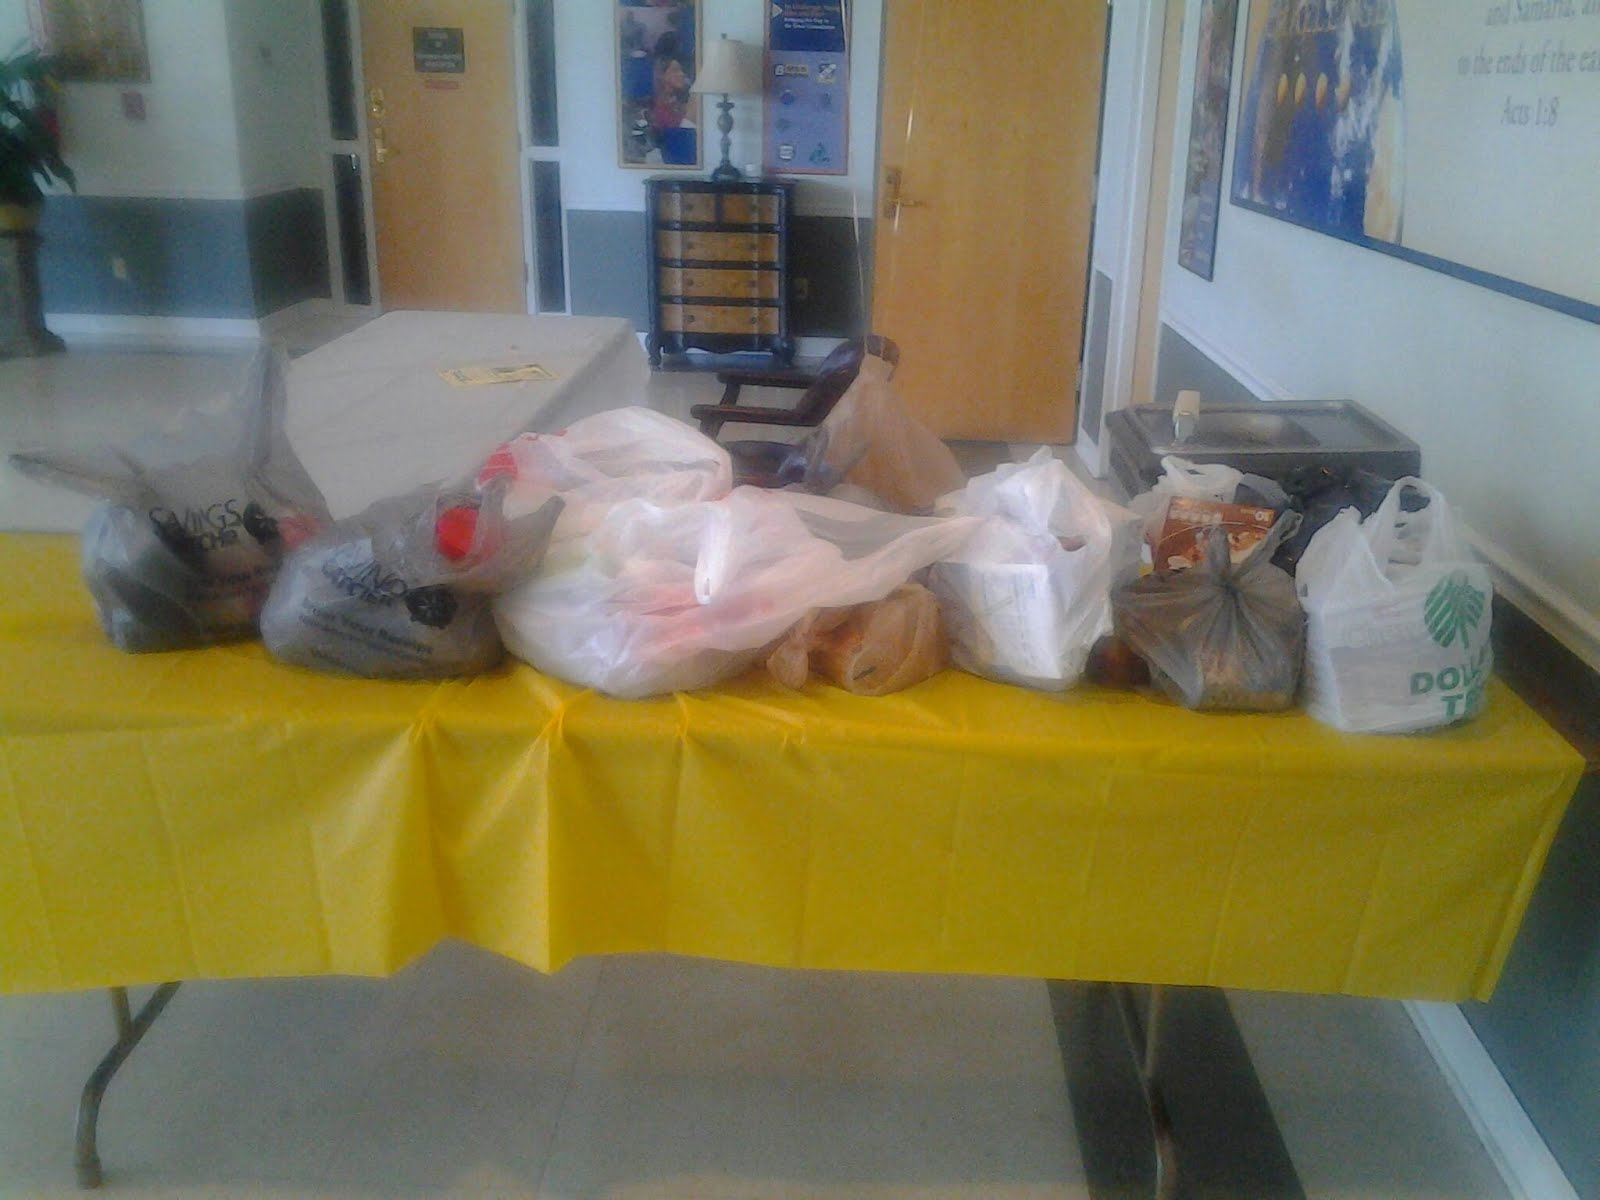 Donations from CAOT supporters to a Savannah-based nonprofit in 2014